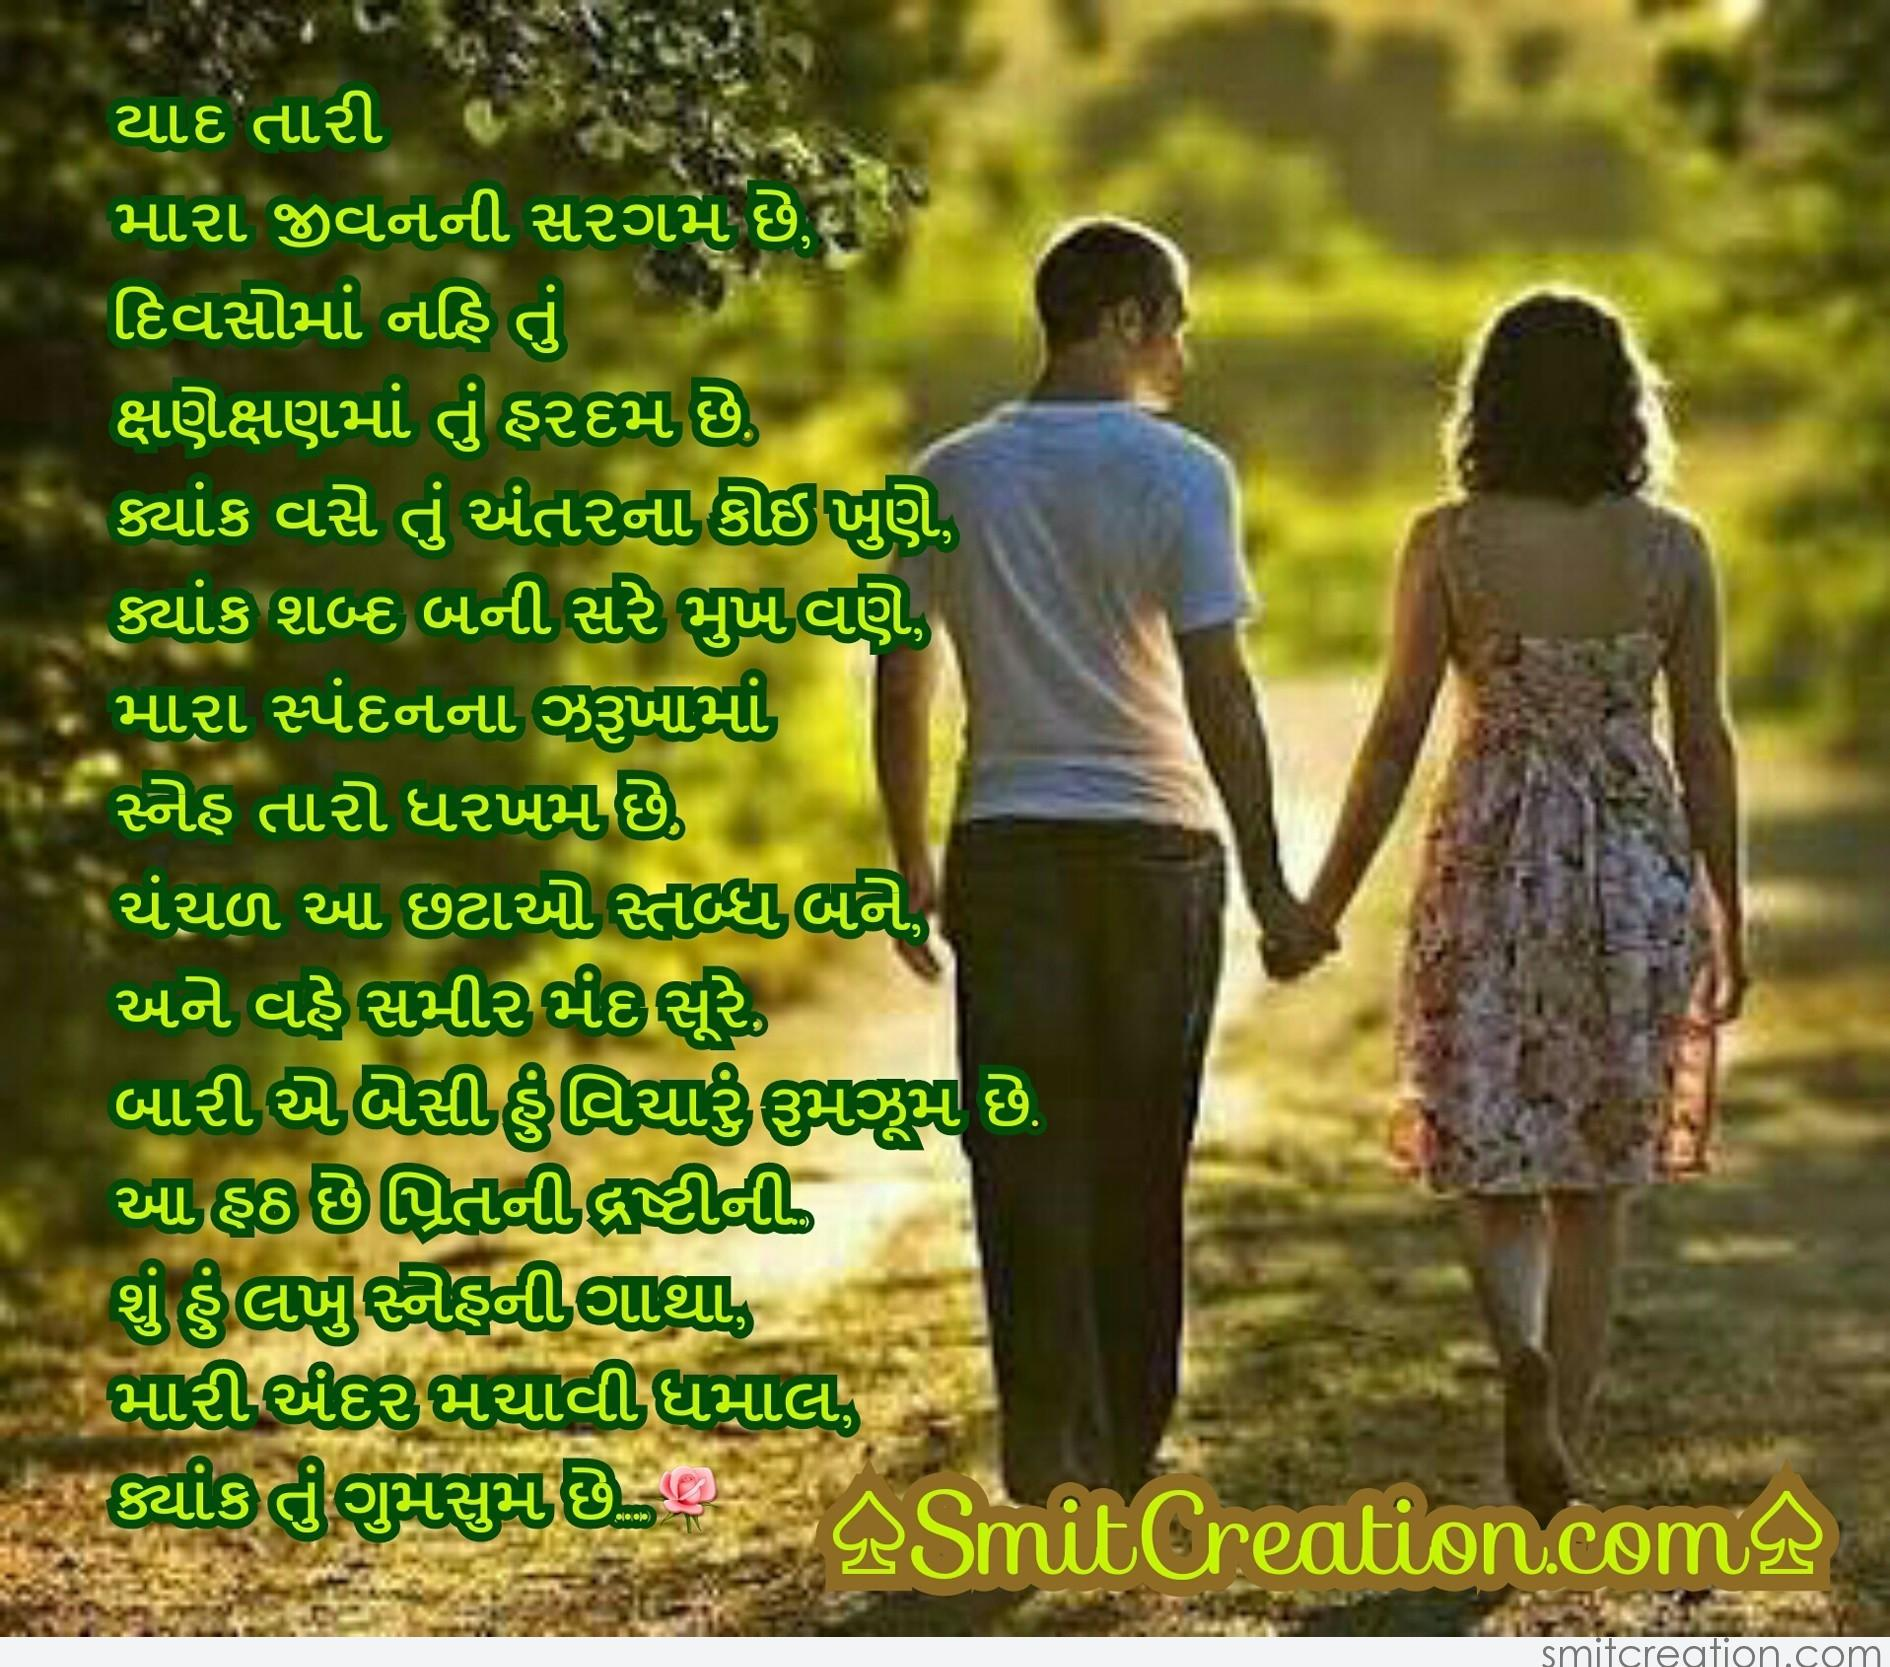 Ek Samay Tu To Meri Dilse Song Download: S Src Love Dil Ki Shayeri T Love Quotes Love And True